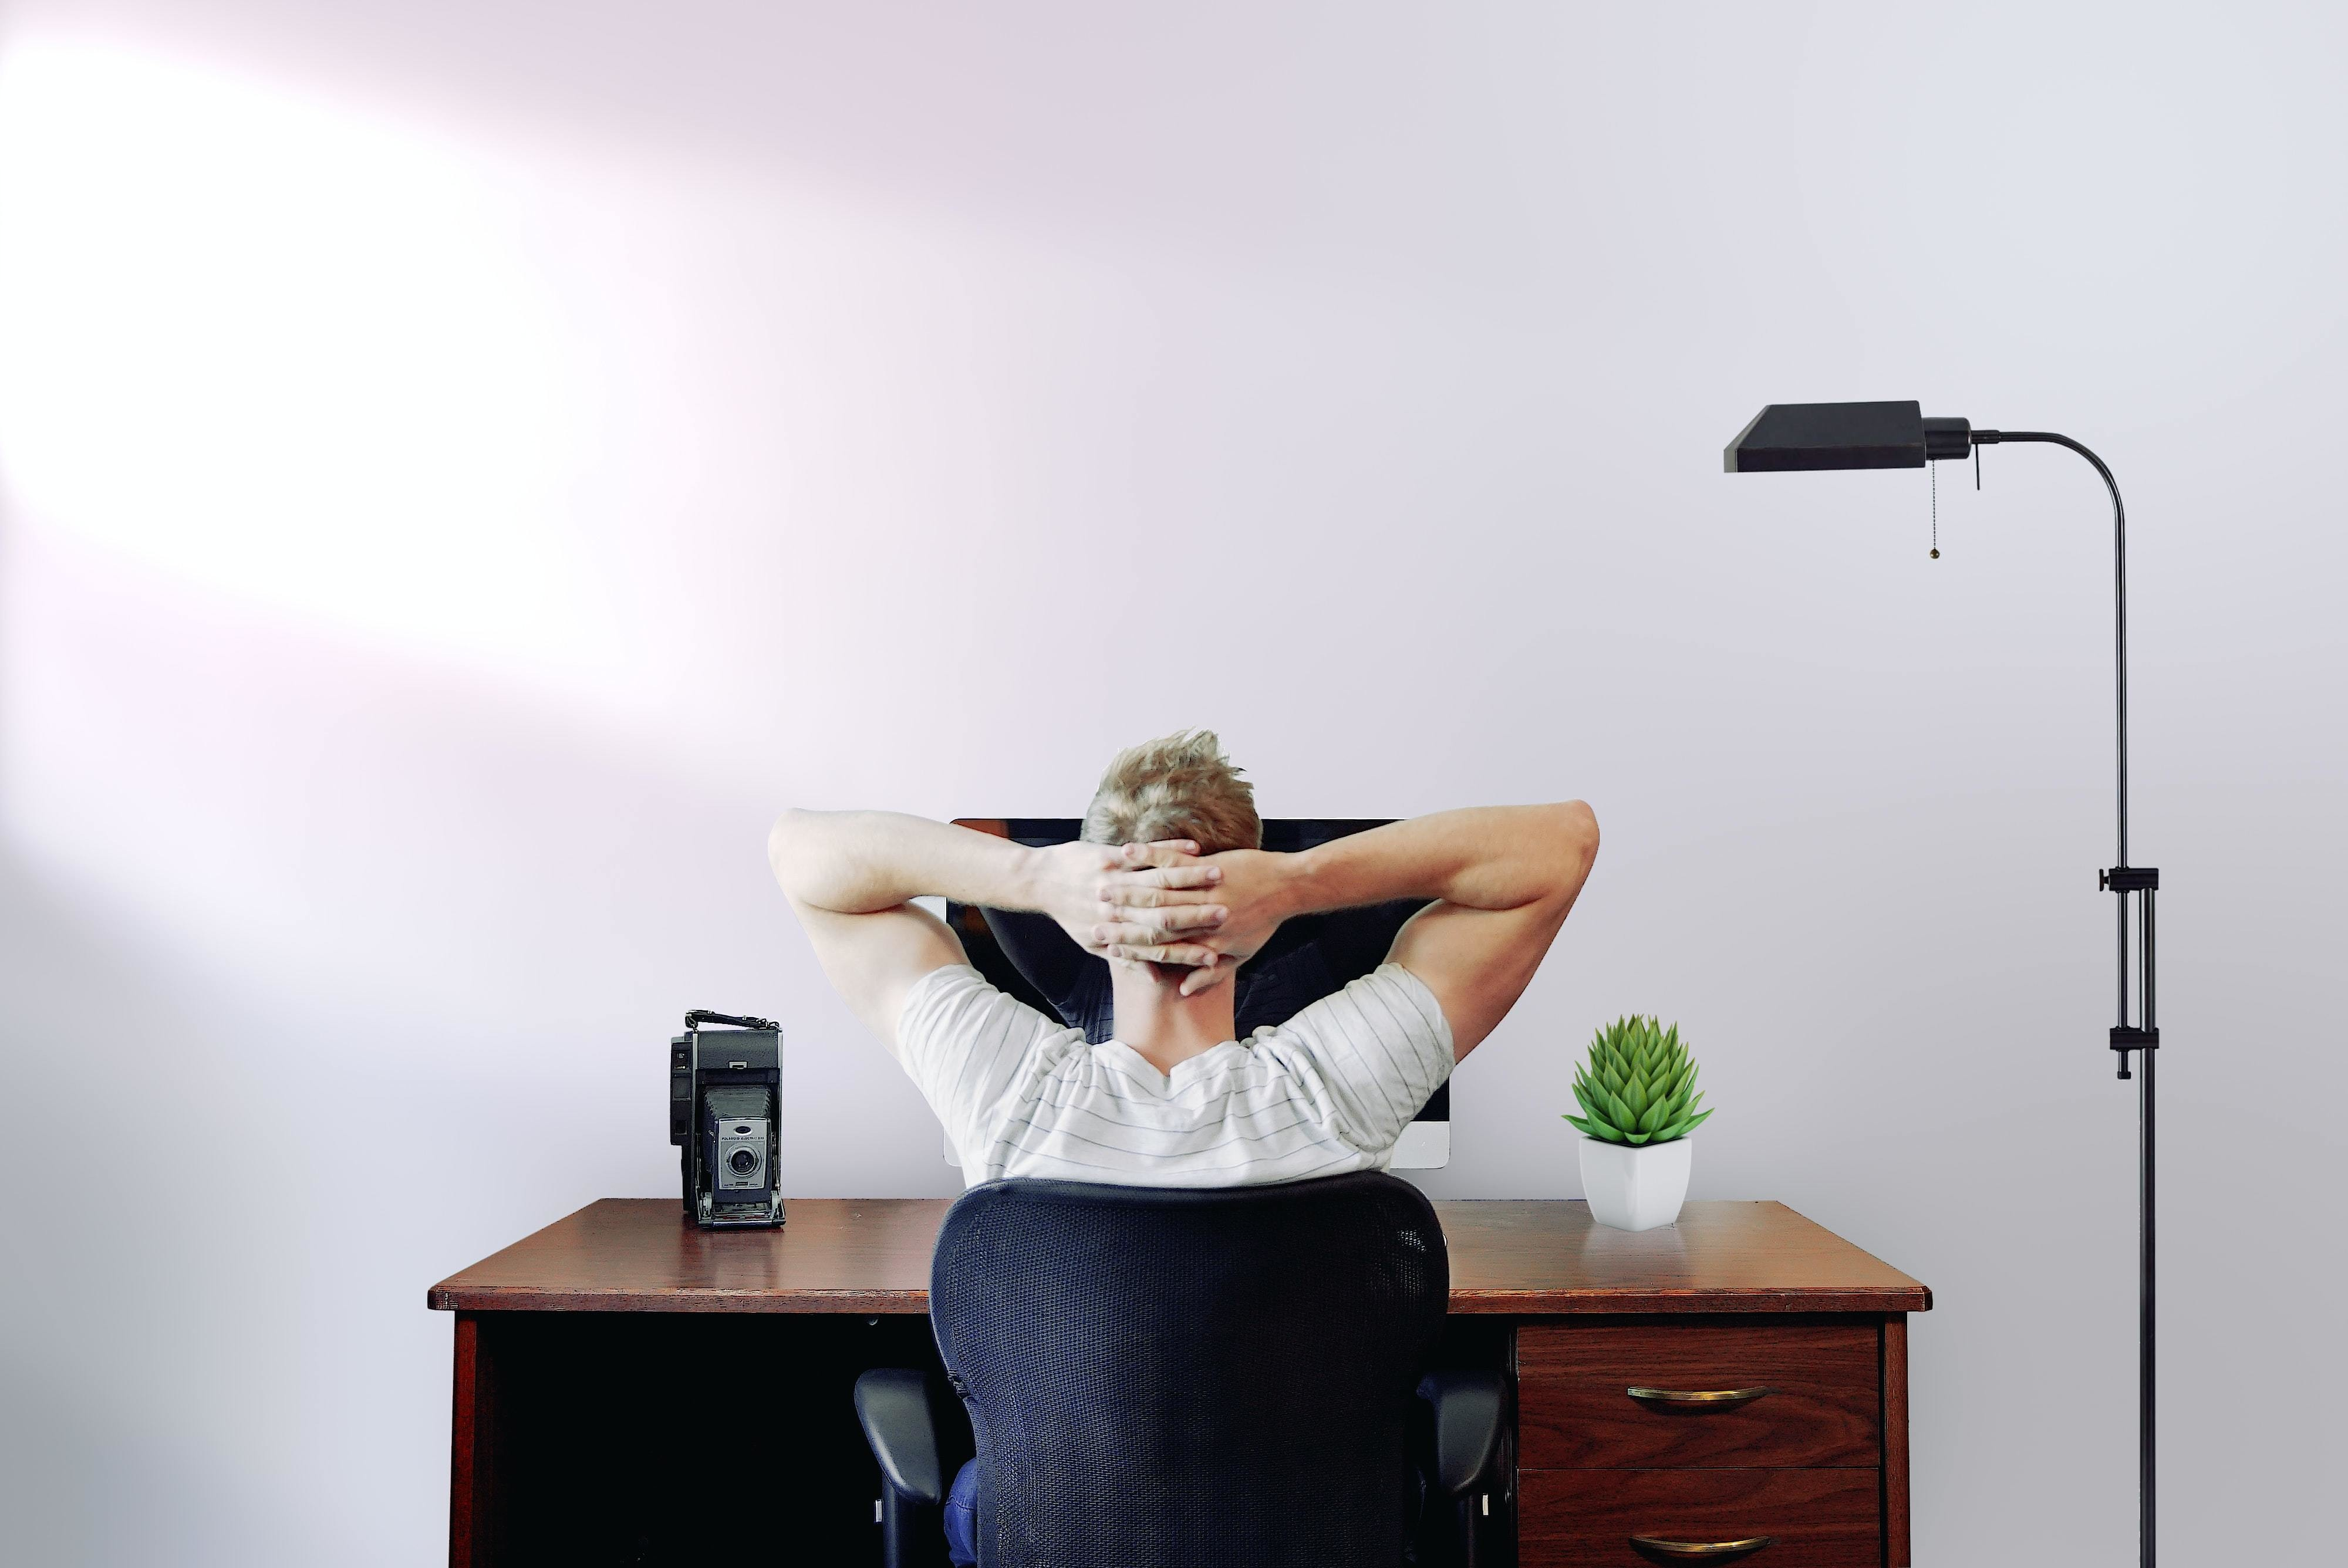 this man is working from home. A new report from the United Nations Development Programme has revealed how workplace developments can help us to move forward as a society